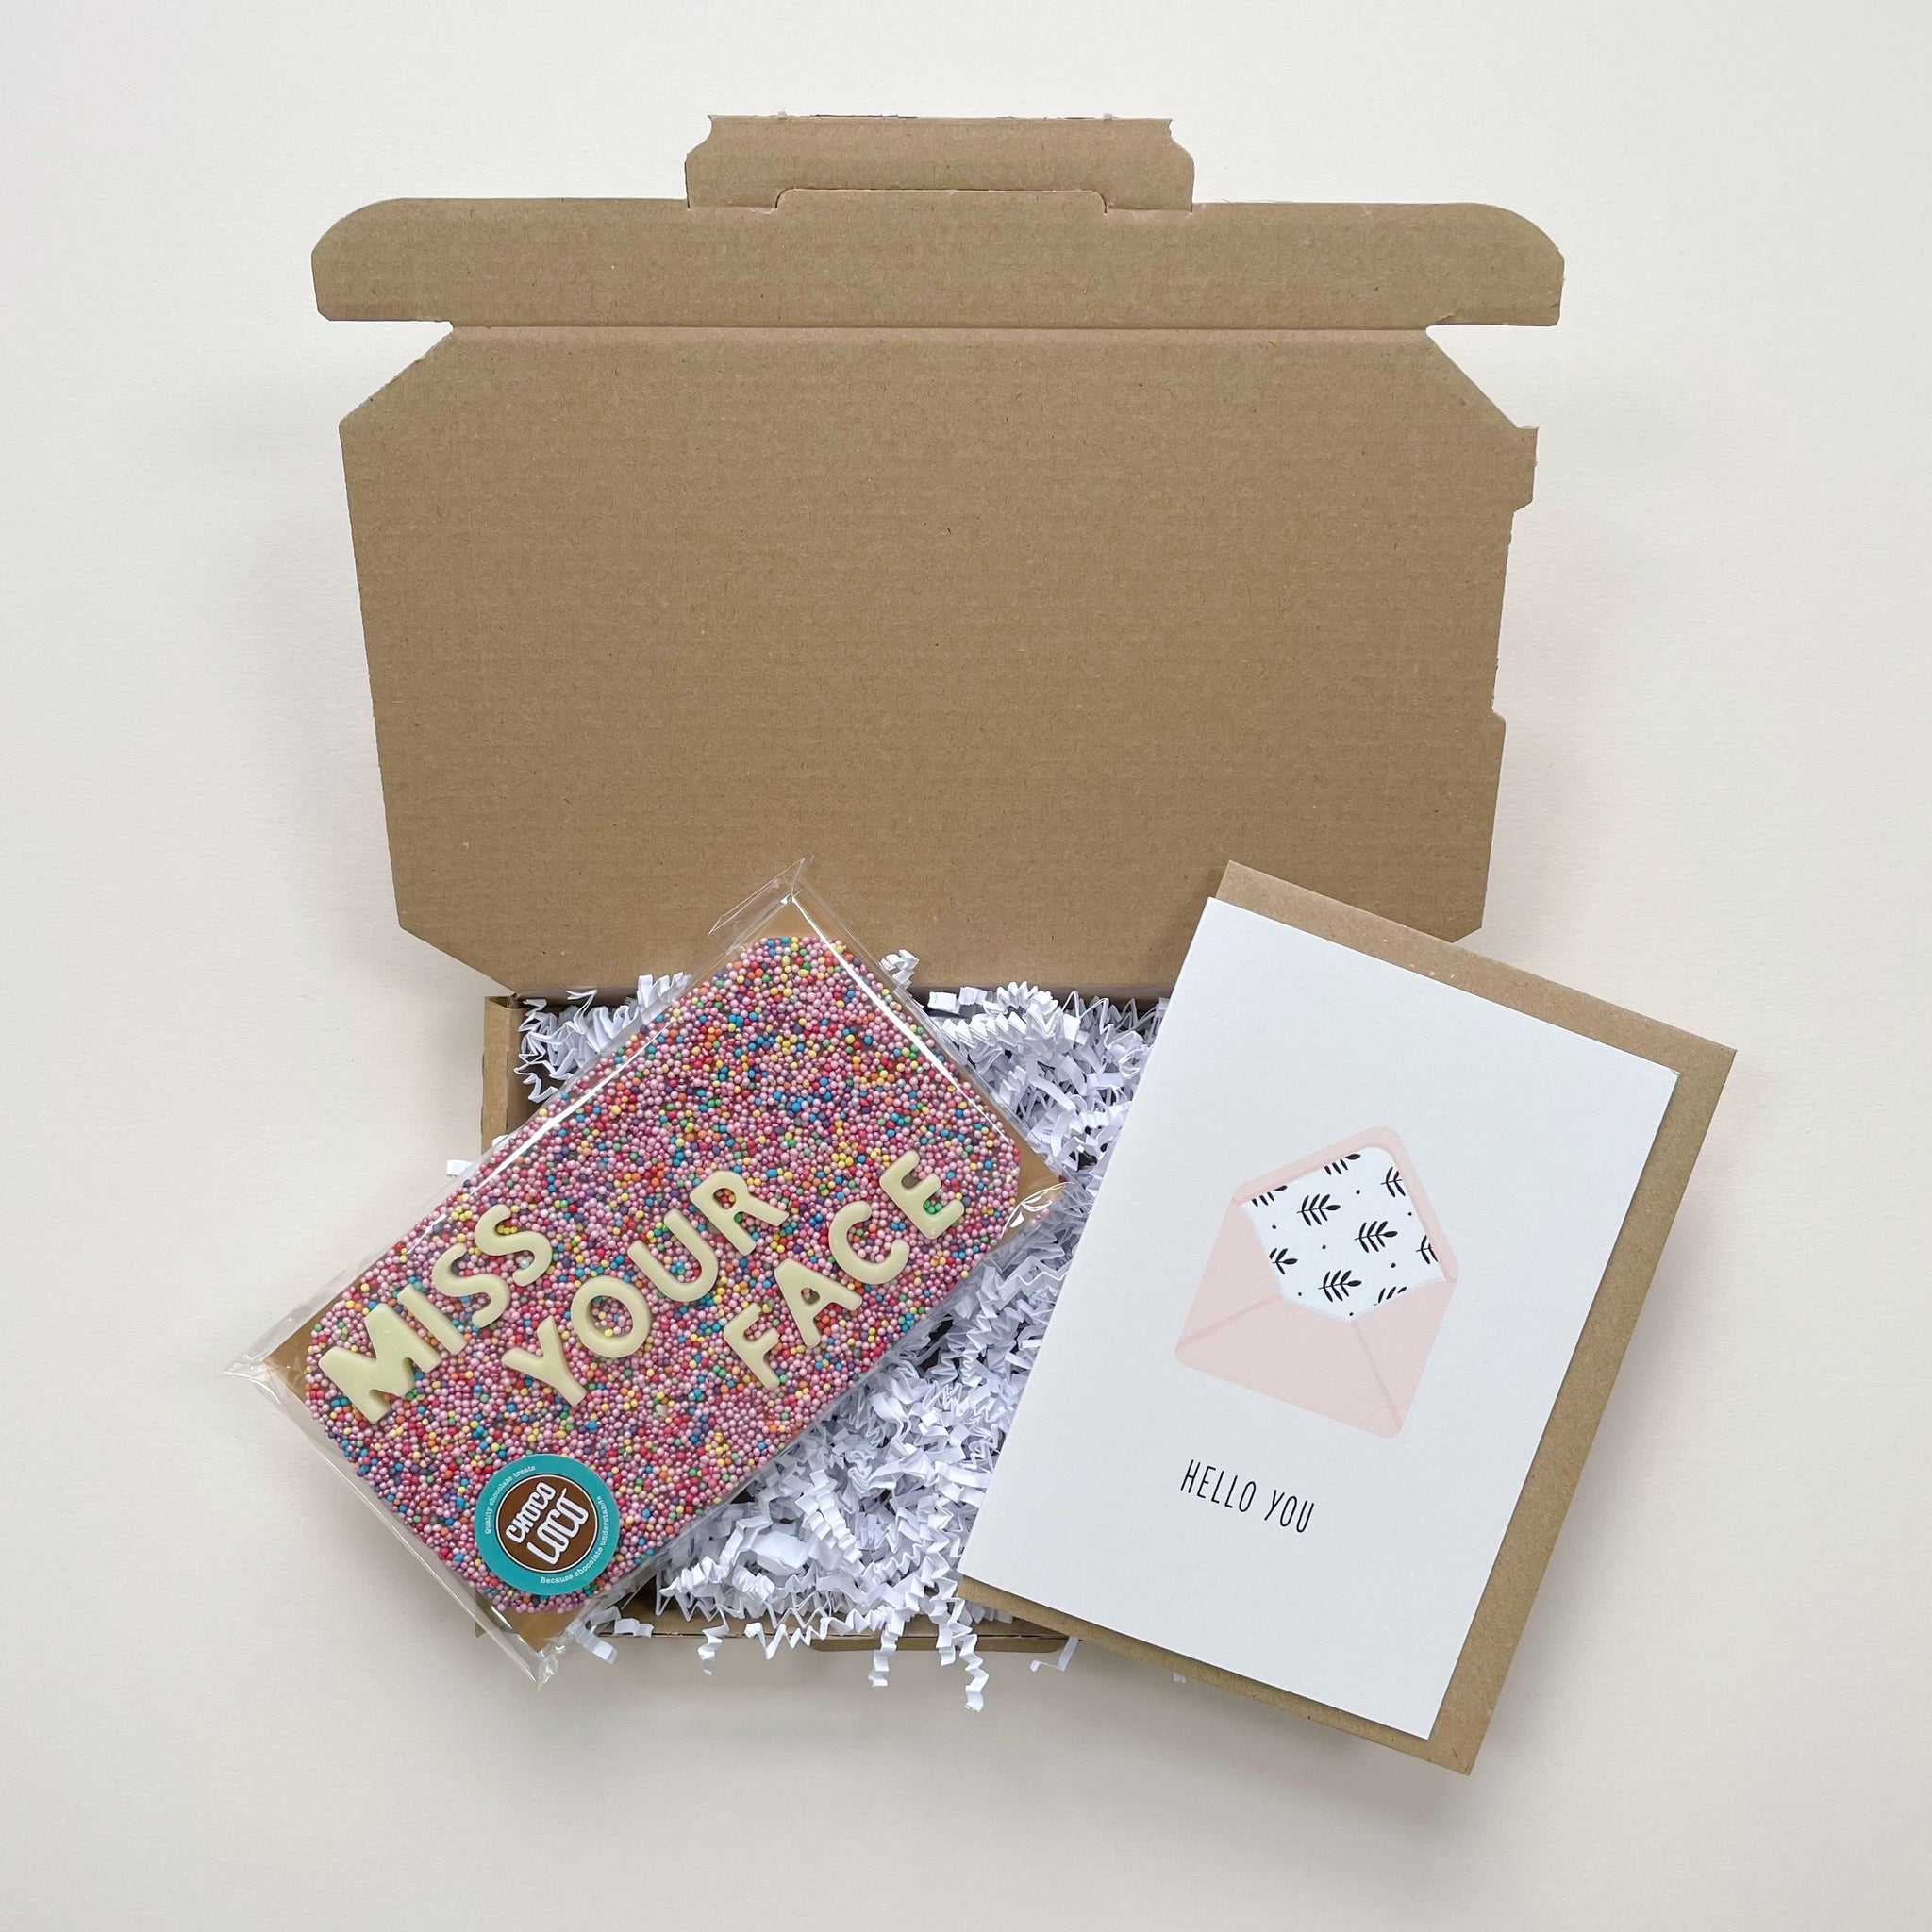 This Miss Your Face gift box contains a bar of Belgian chocolate that spells 'Miss your face' and is accompanied with a Ricicle Cards 'hello you' greeting card.